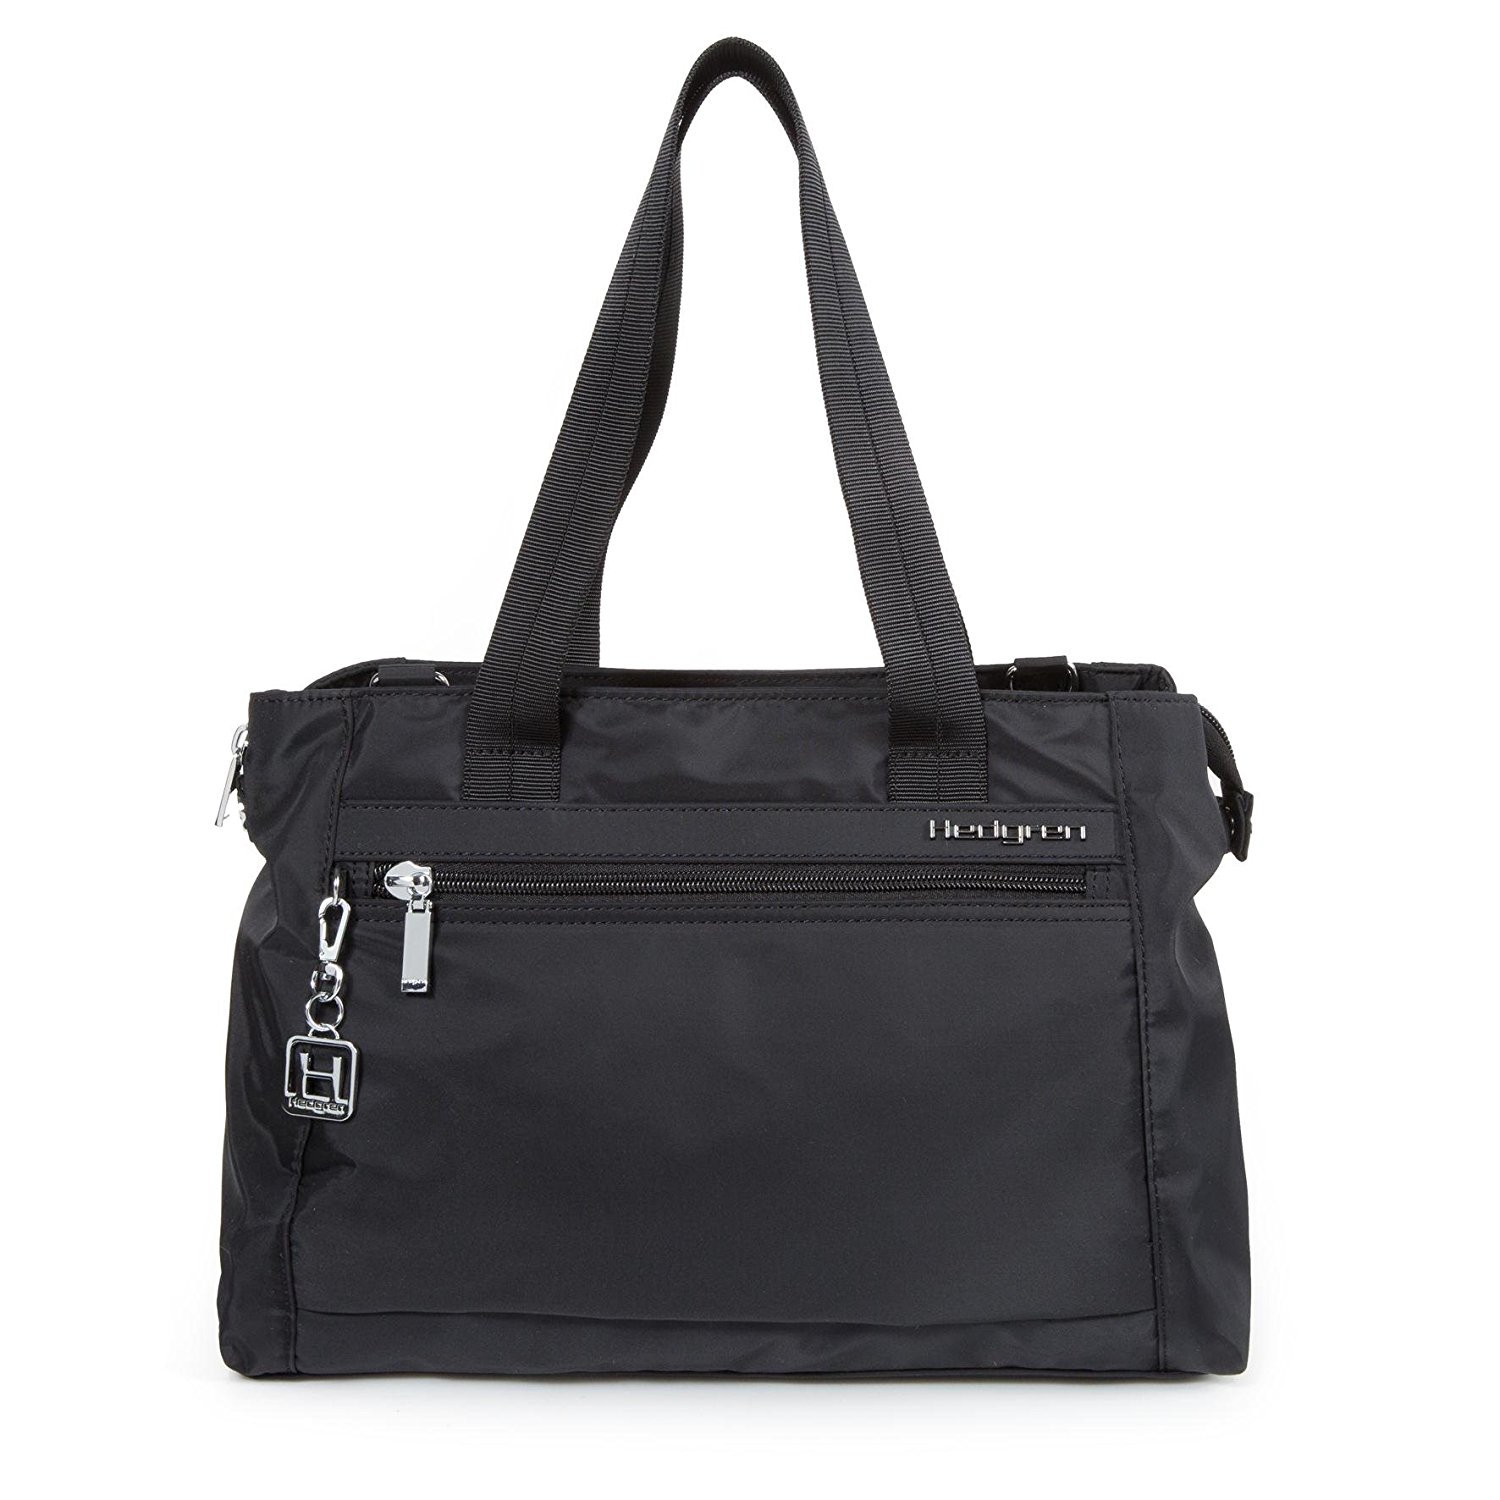 585ee80e73 Buy Hedgren Fate Shoulder Bag Humus in Cheap Price on Alibaba.com